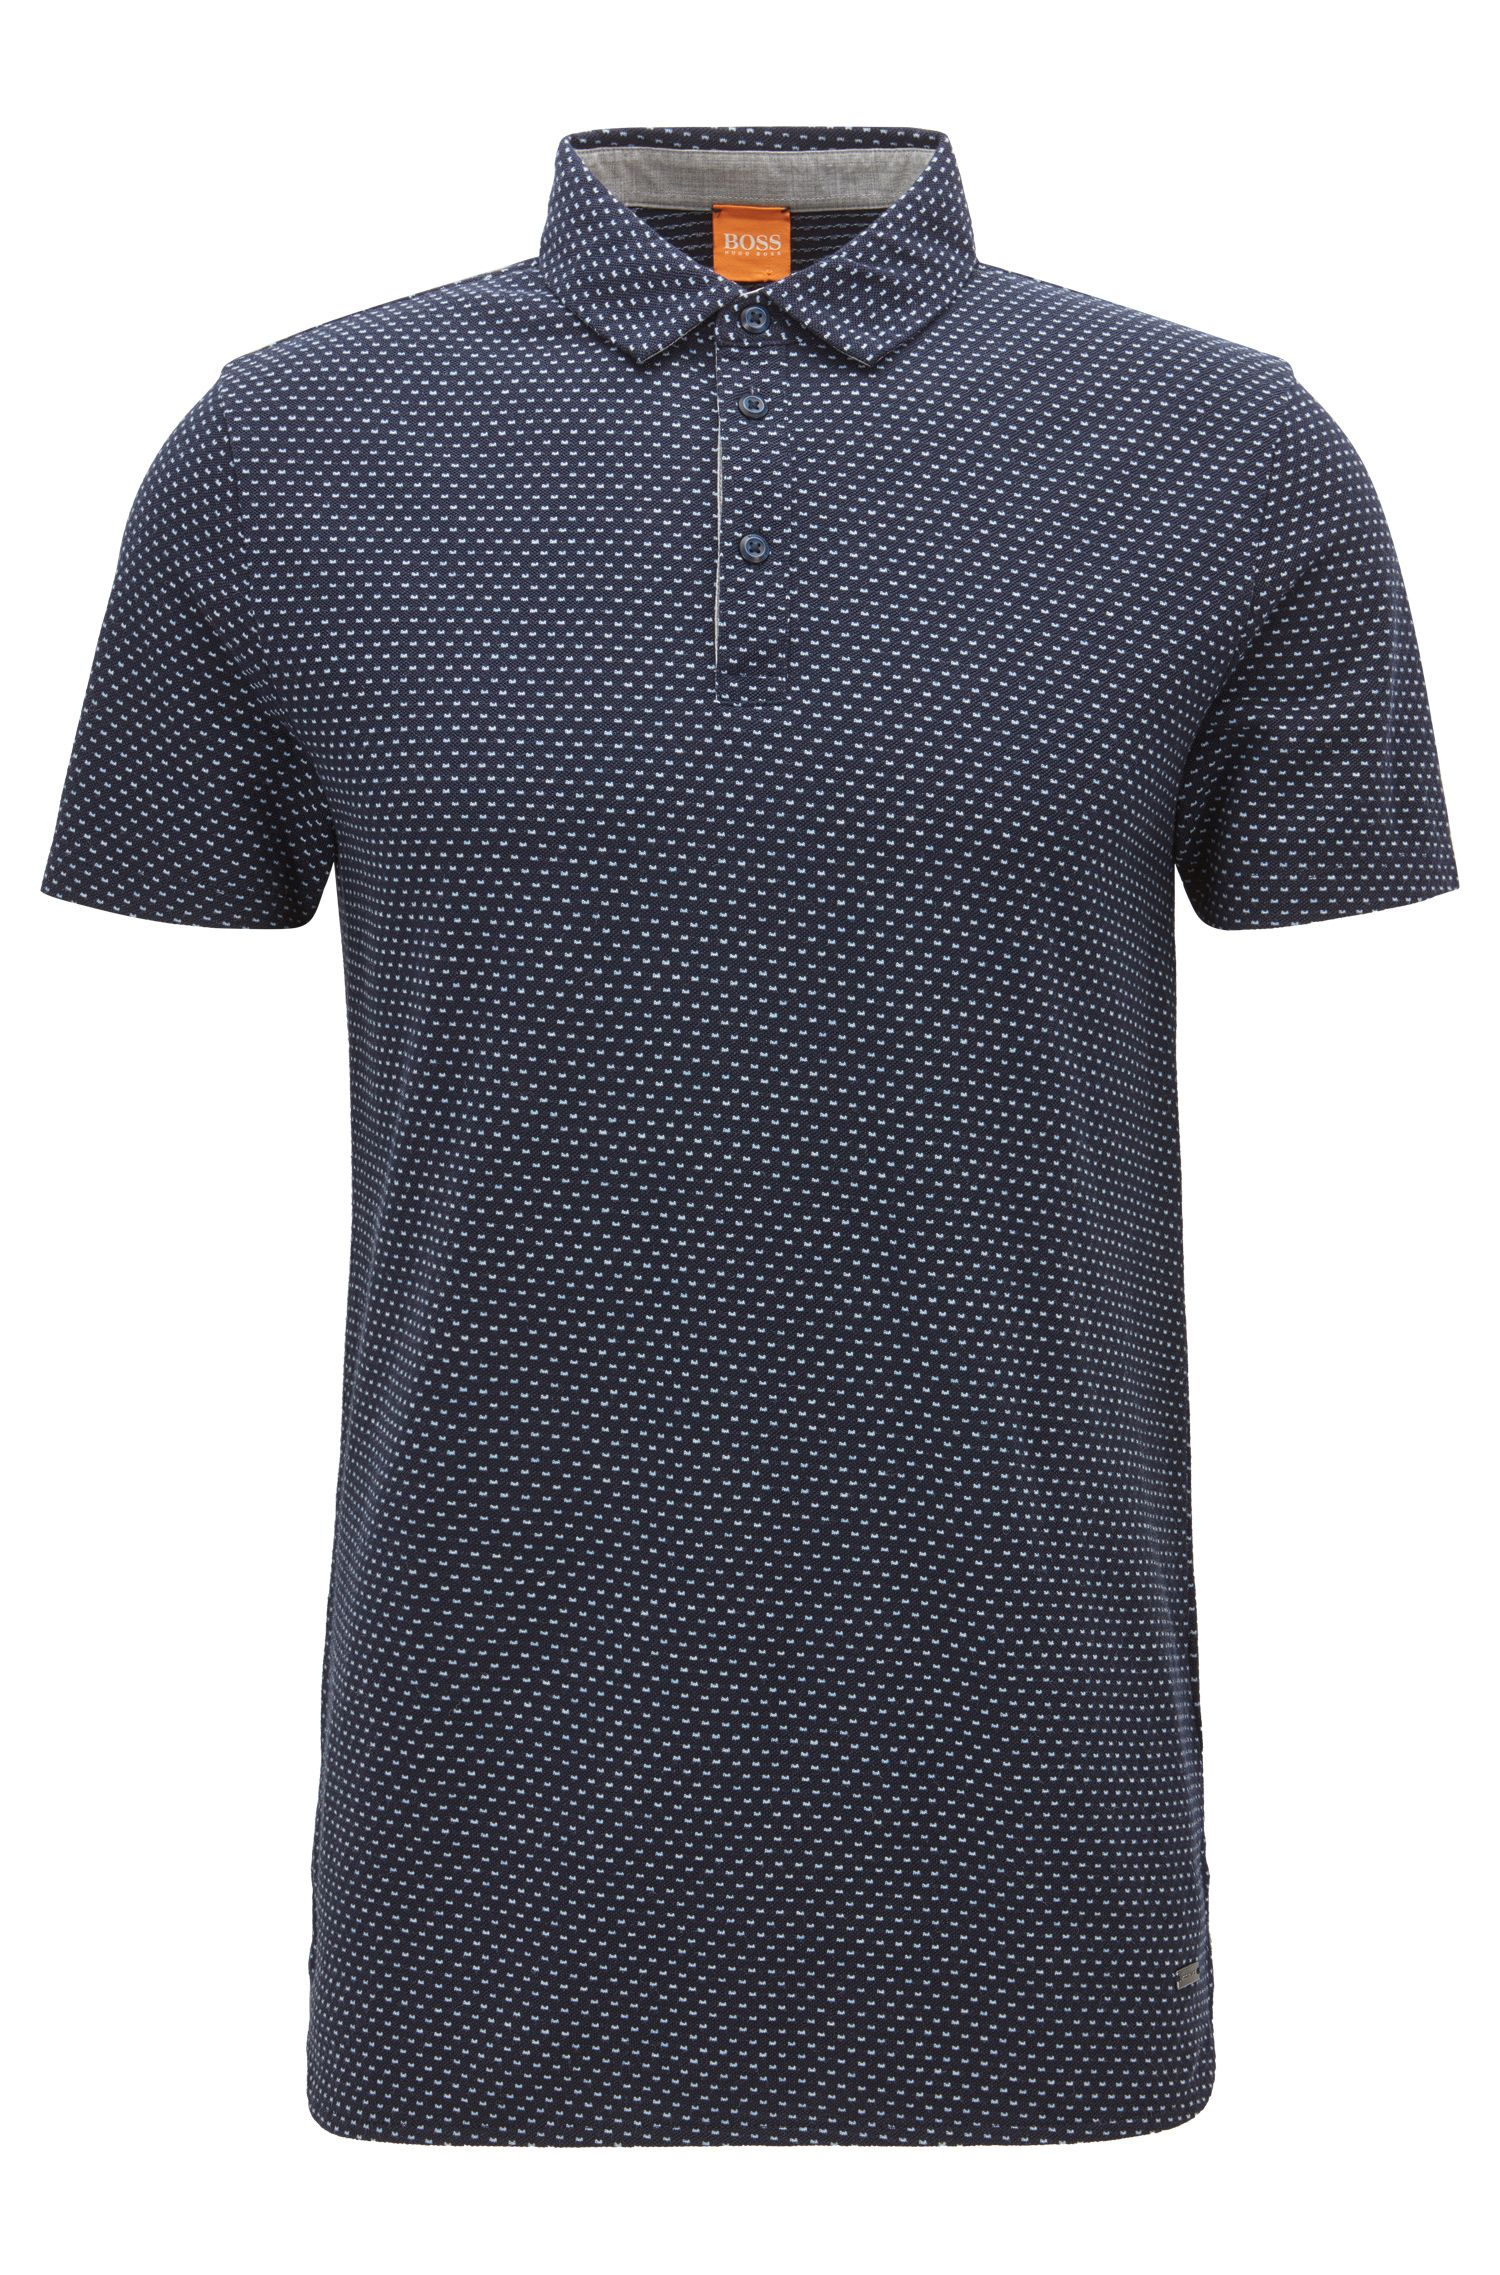 Polka Dot Piqué Cotton Polo Shirt, Regular Fit | Perfect